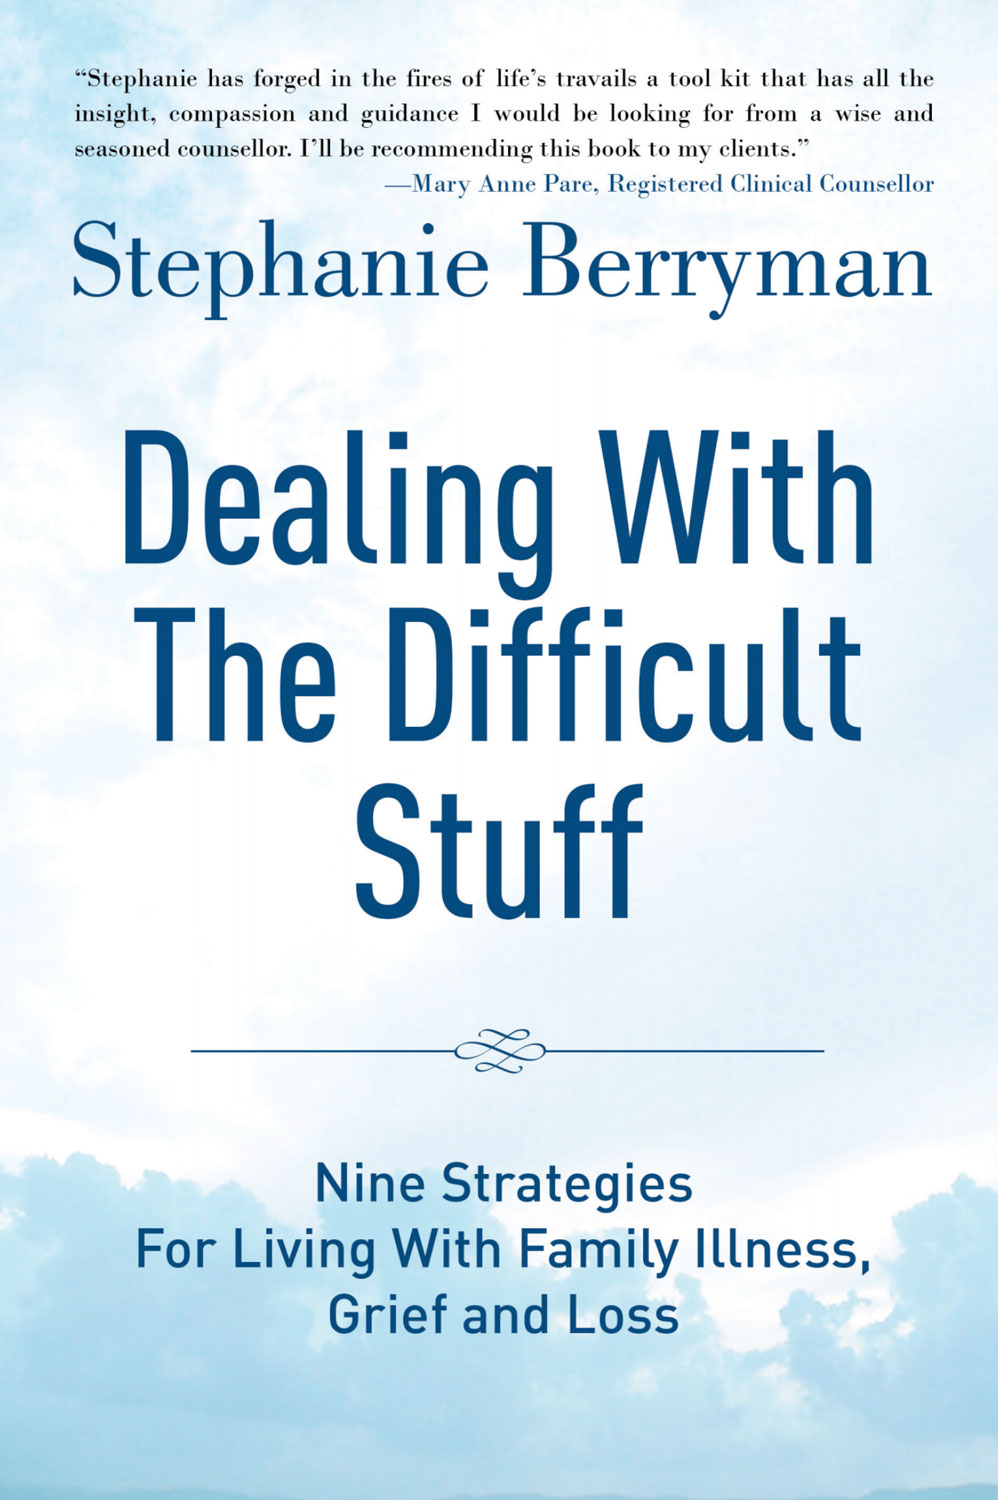 Dealing with the Difficult Stuff by Stephanie Berryman